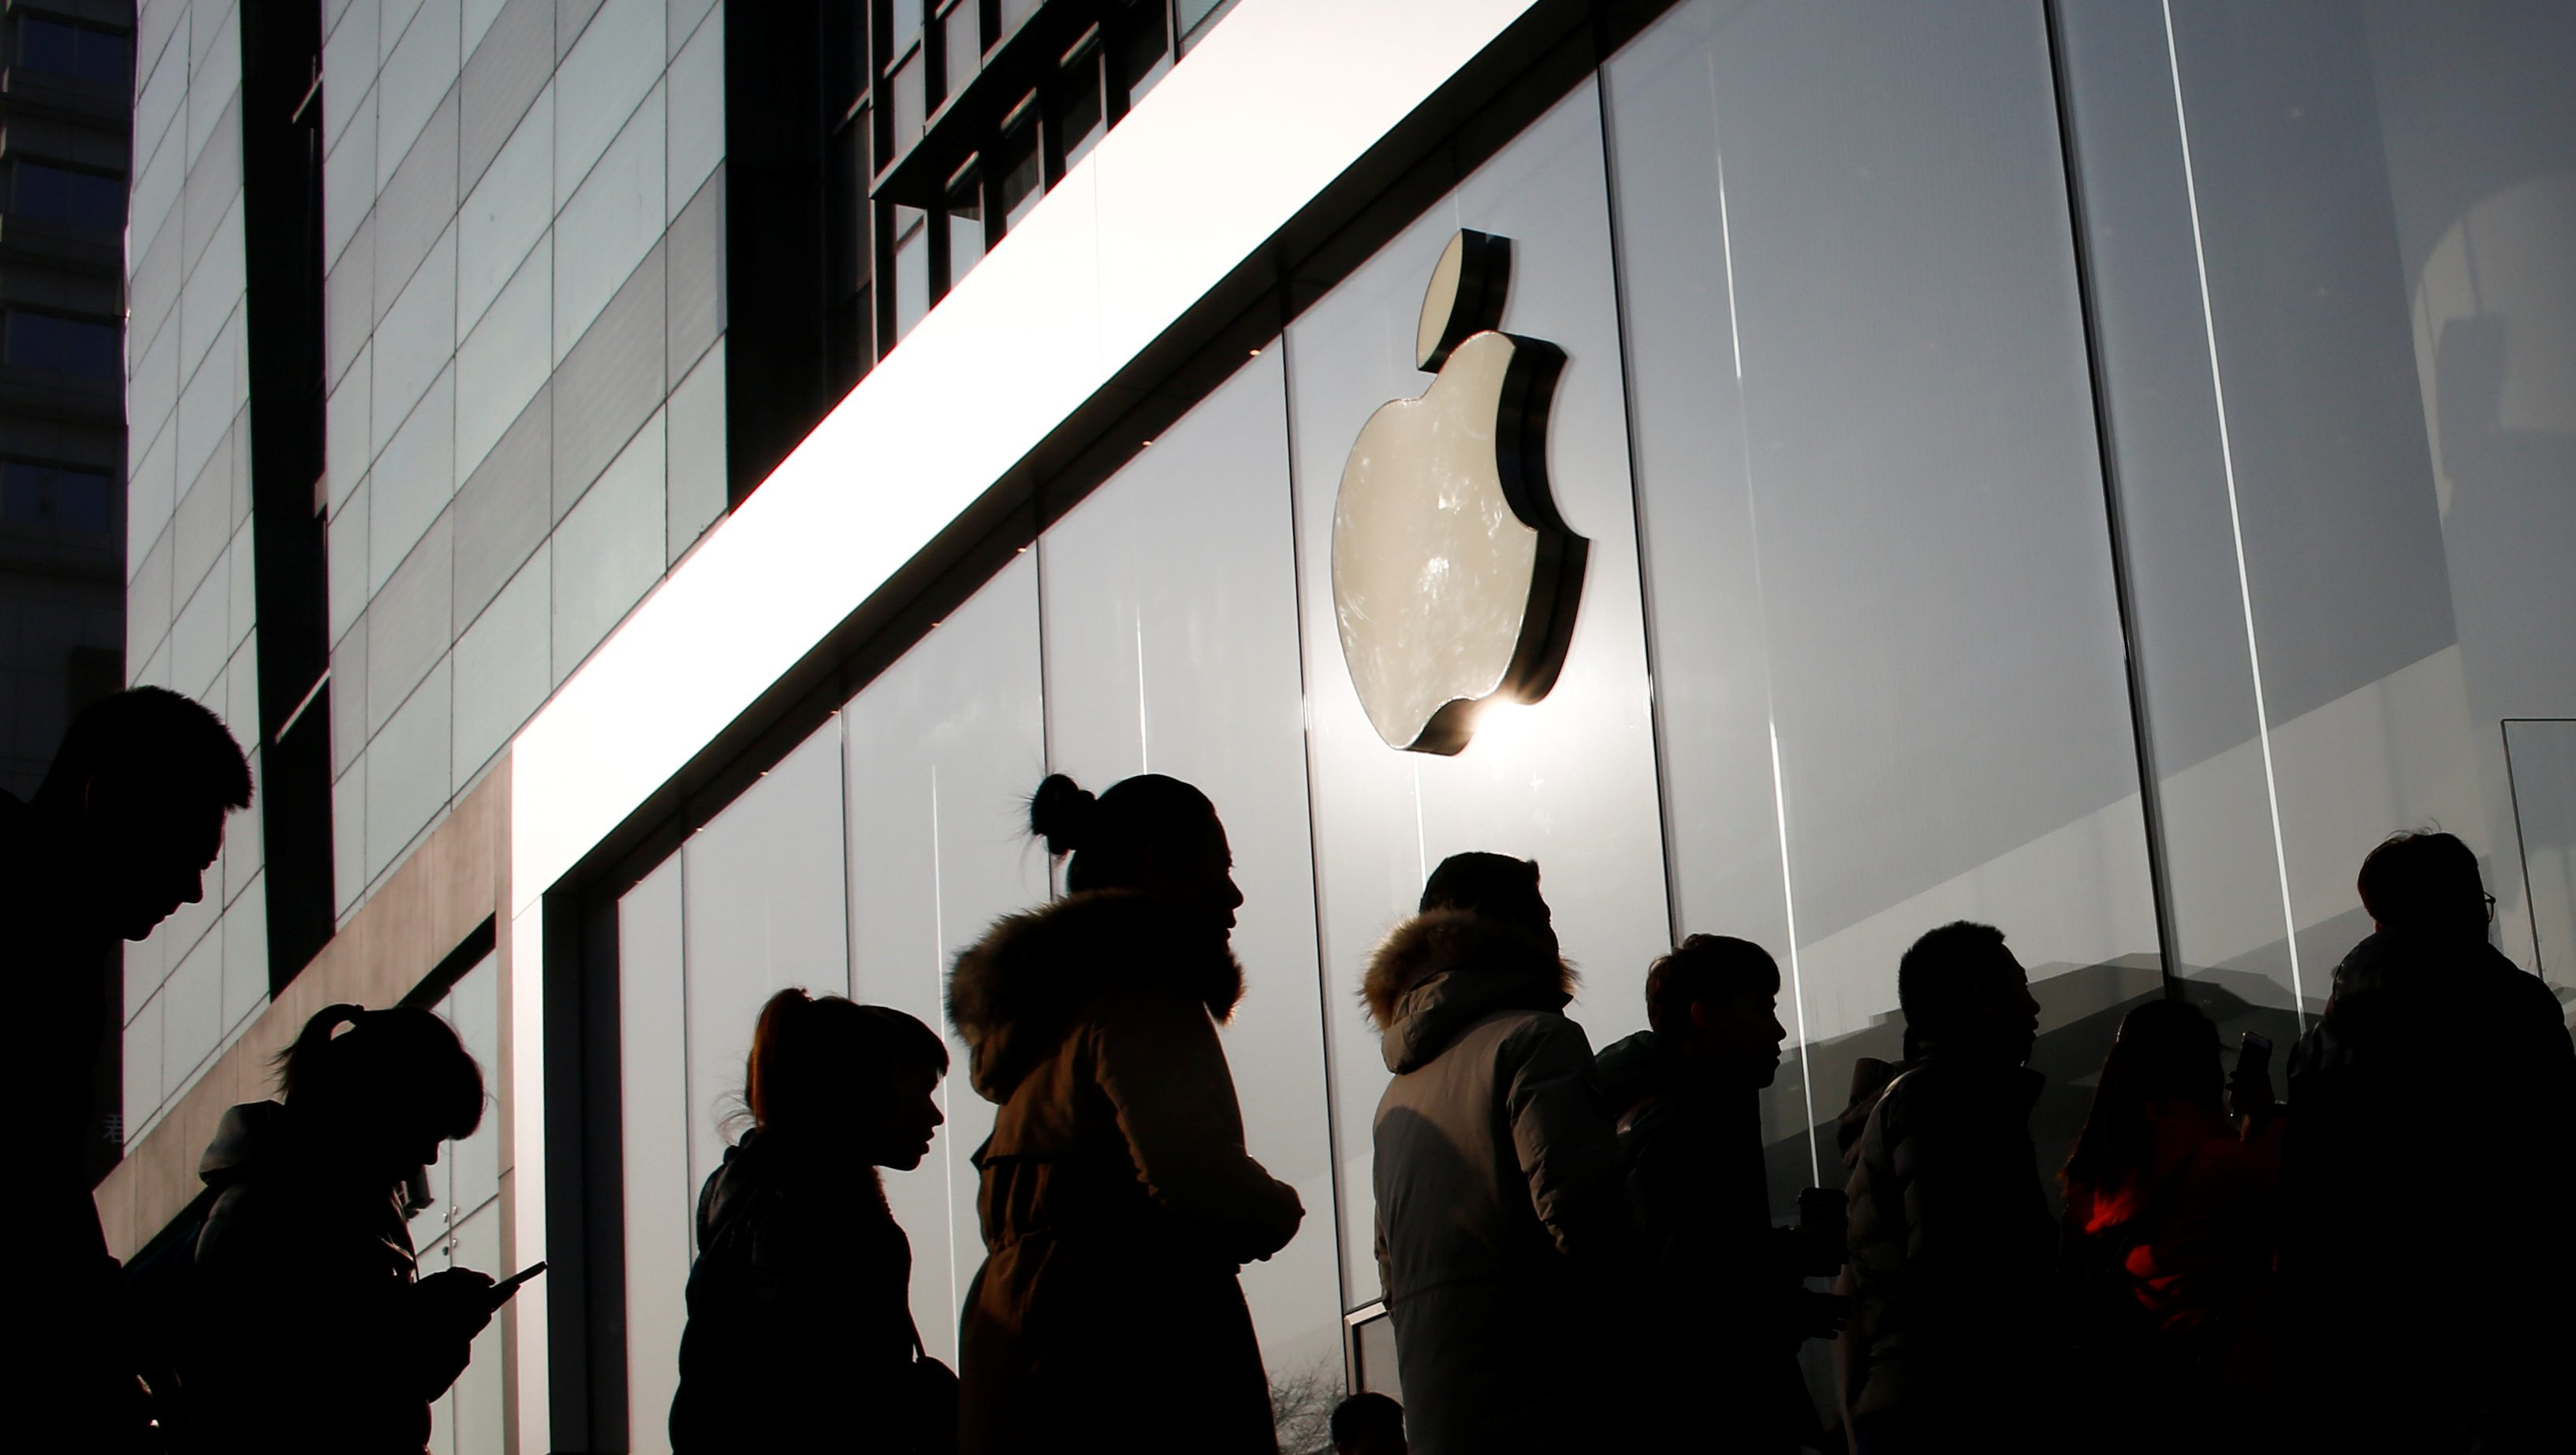 People line up at an Apple store shortly before it opens in Beijing, China, January 3, 2017.  REUTERS/Thomas Peter - RTX2XBAB